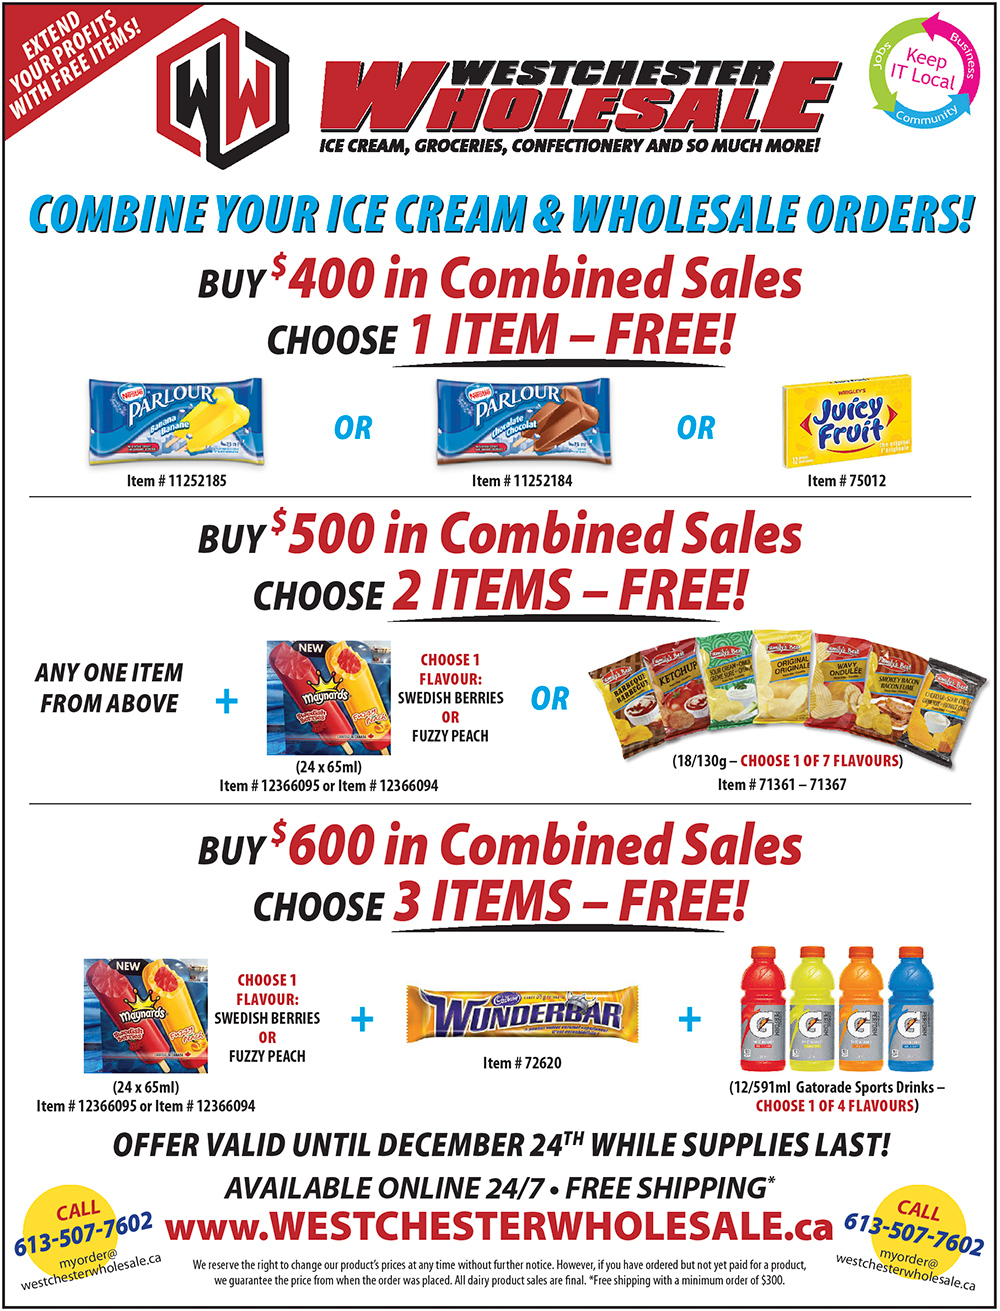 Combine Your Order and Select Free Products